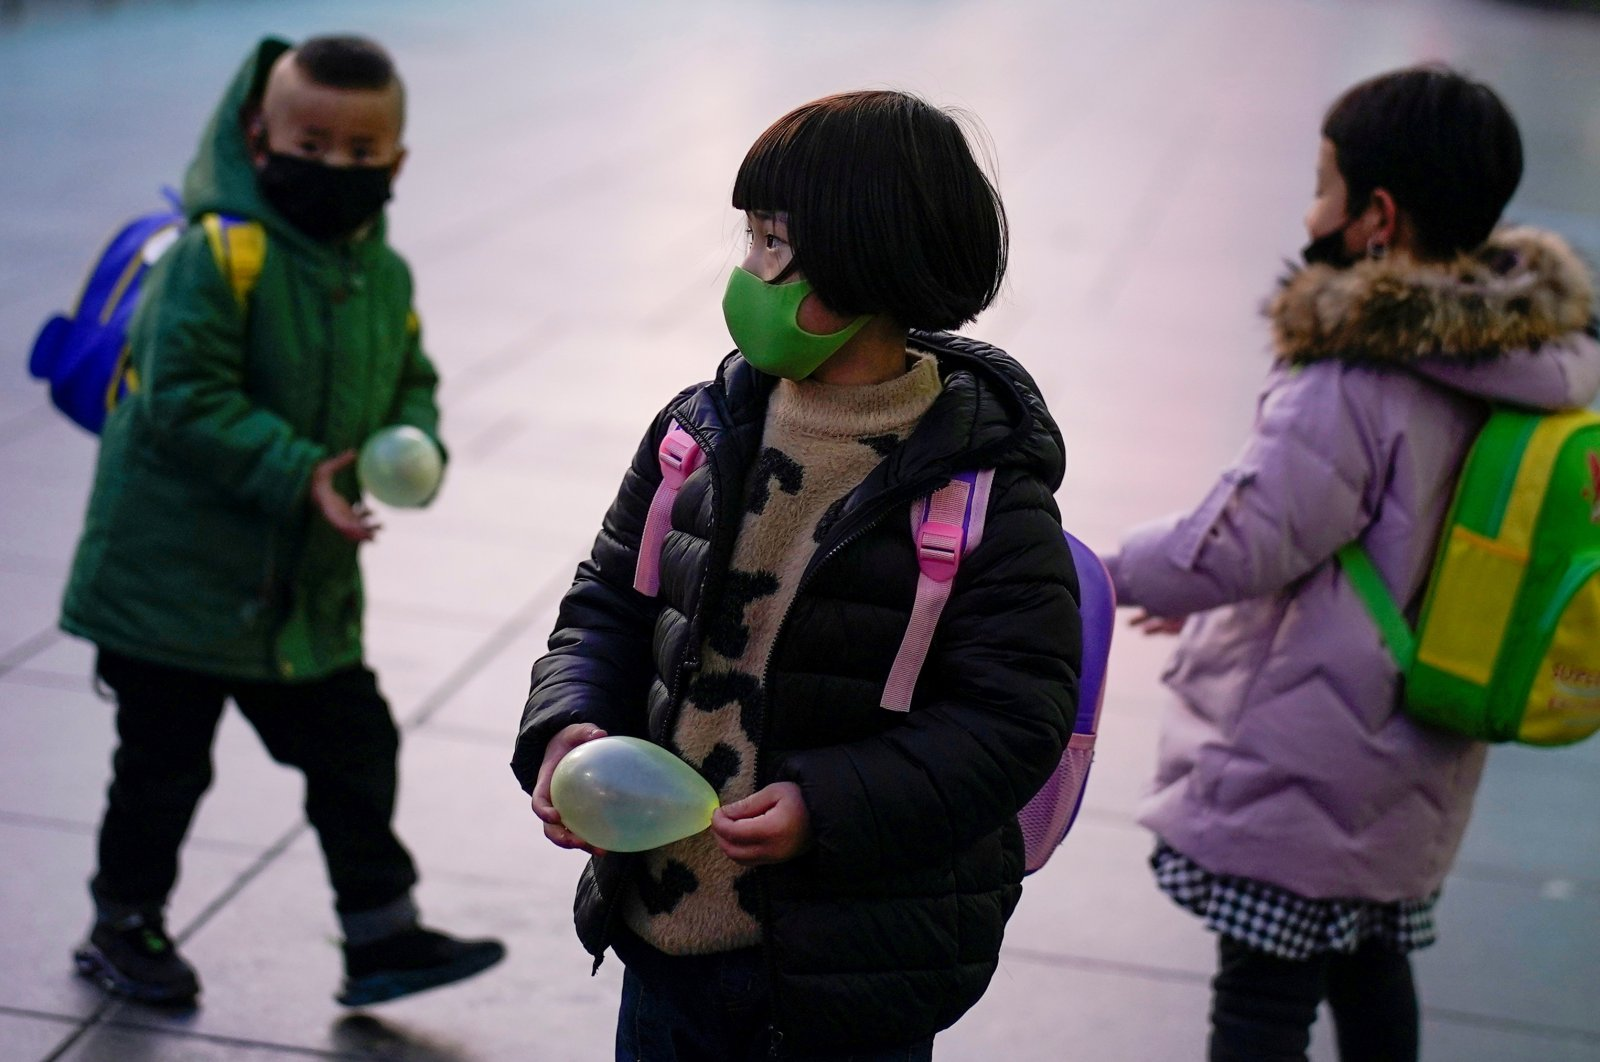 Children wearing face masks are seen at Shanghai railway station, Shanghai, China March 5, 2020. (Reuters Photo)